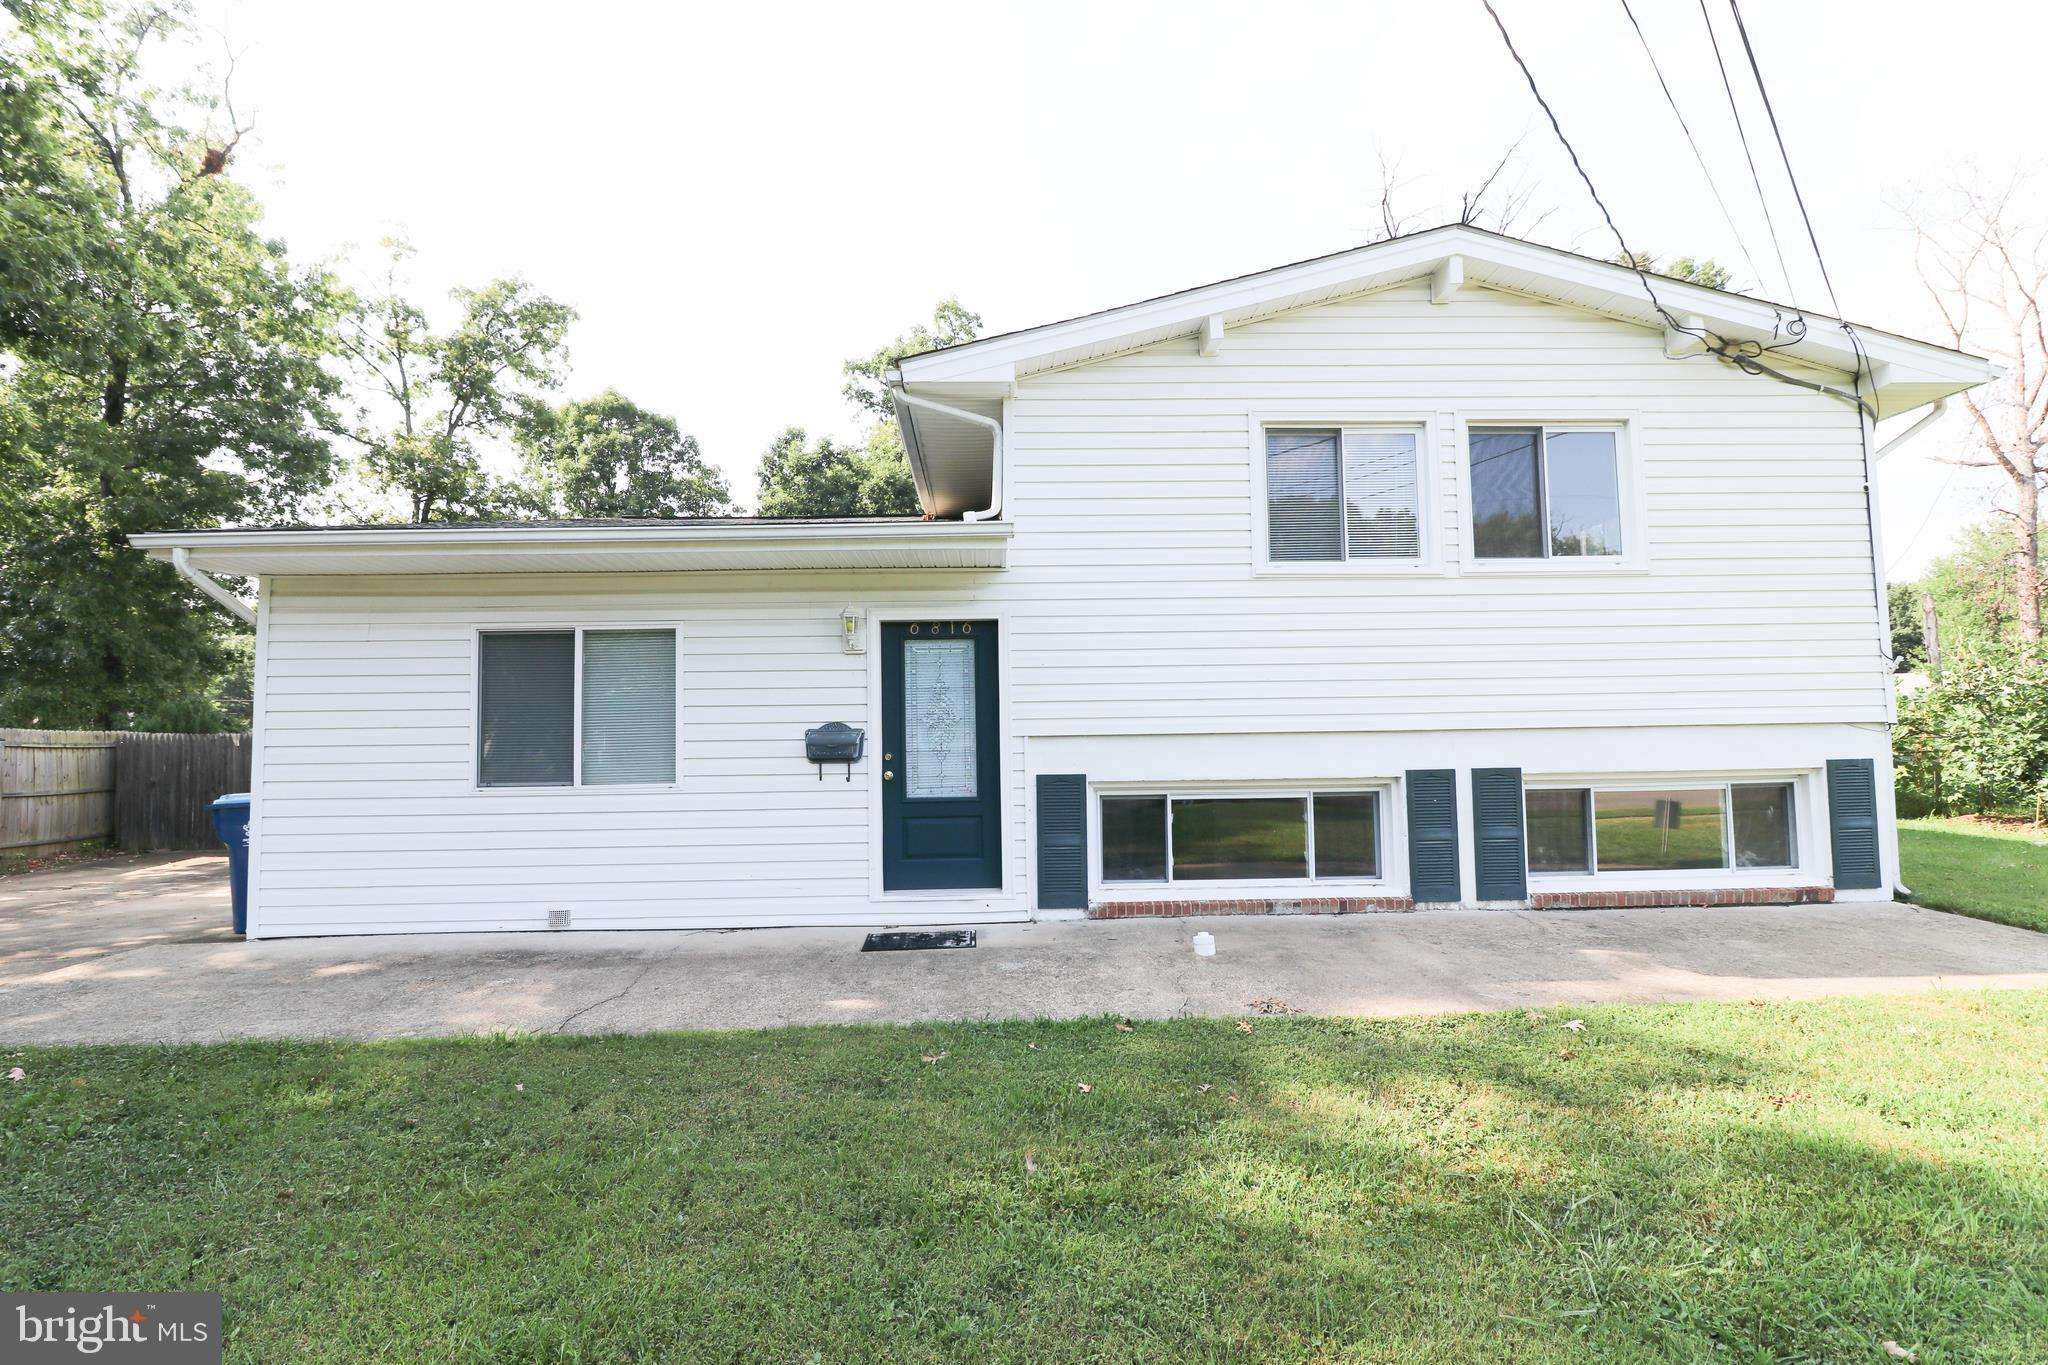 One of the Largest Split-Level's in the Neighborhood boasts plenty of space for anything you can imagine. Lots of upgrades, Kitchen features Newer Appliances with Semi-Open Concept. Large Rec Room off the Kitchen with rough in. This Home~s Unique Layout features Main Home with 3 bdrm 2 bath. Basement Studio and Upstairs studio. Great $$ Income Potential from both. All can be converted back easily. Come take a look and make it yours!  ***Back on the Market*** ***Big Investor Potential**